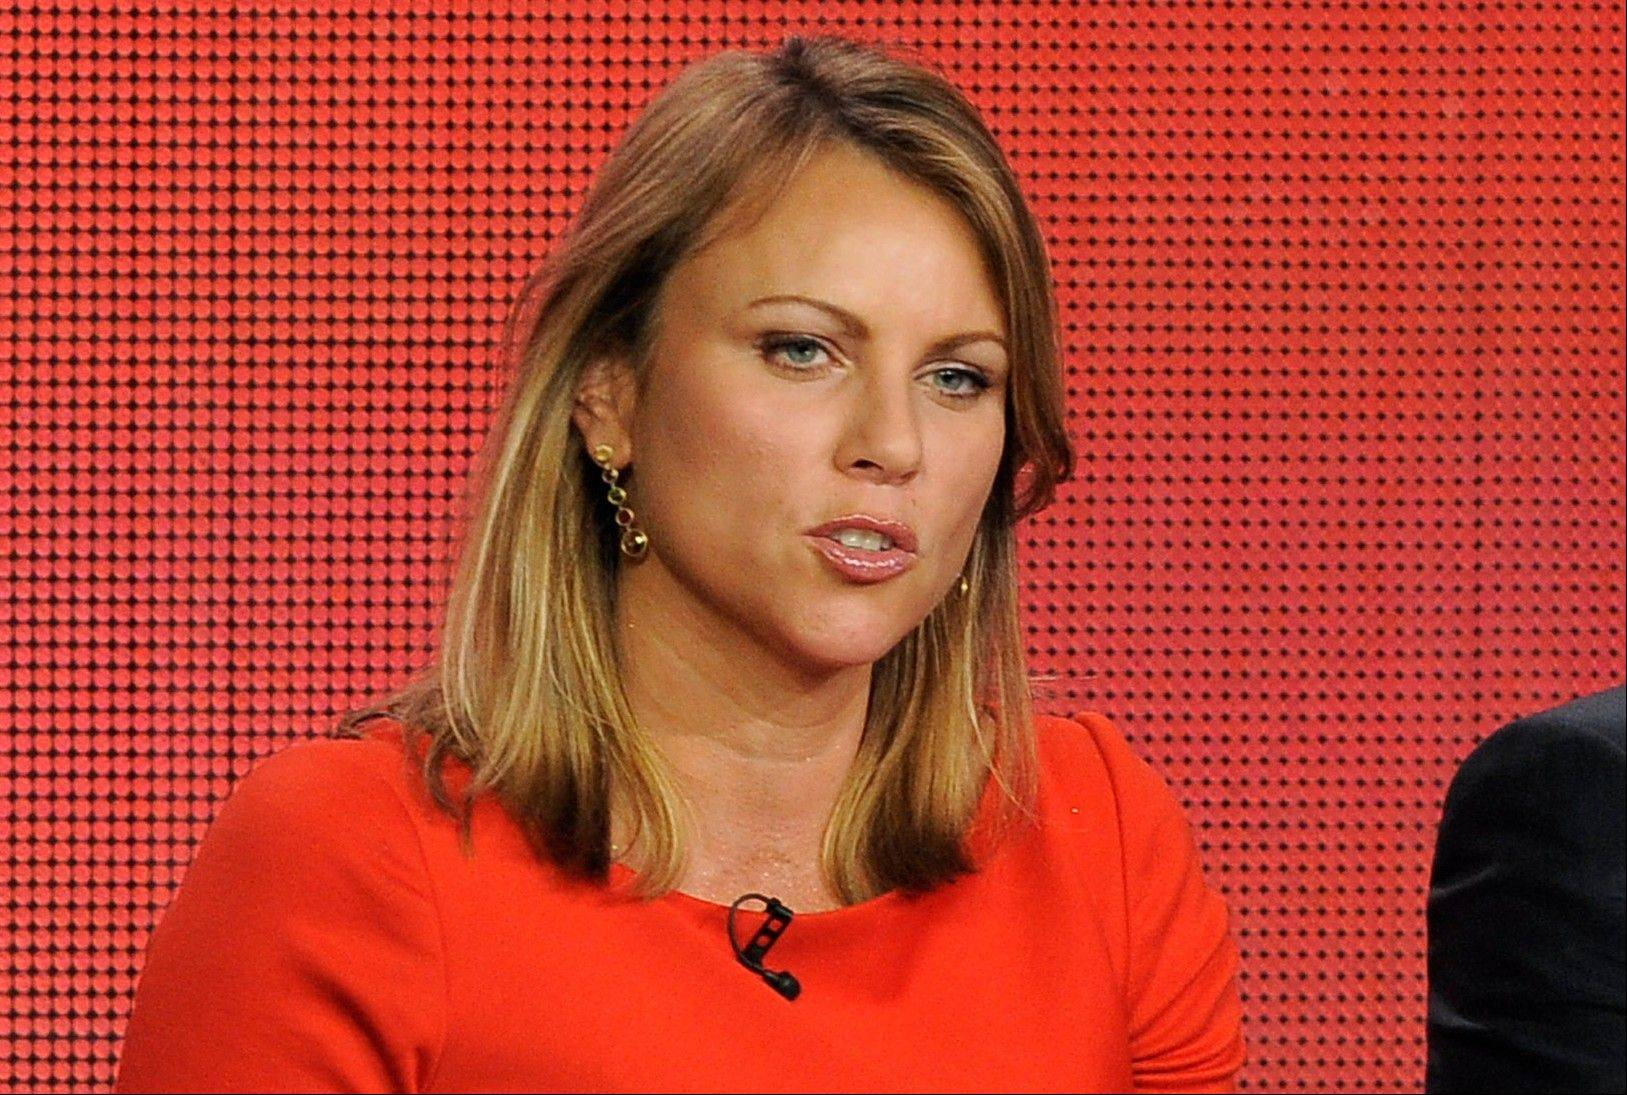 """60 Minutes"" reporter Lara Logan on Friday said that CBS apologizes to viewers and will issue a correction to its Oct. 27 story Sunday on ""60 Minutes."""